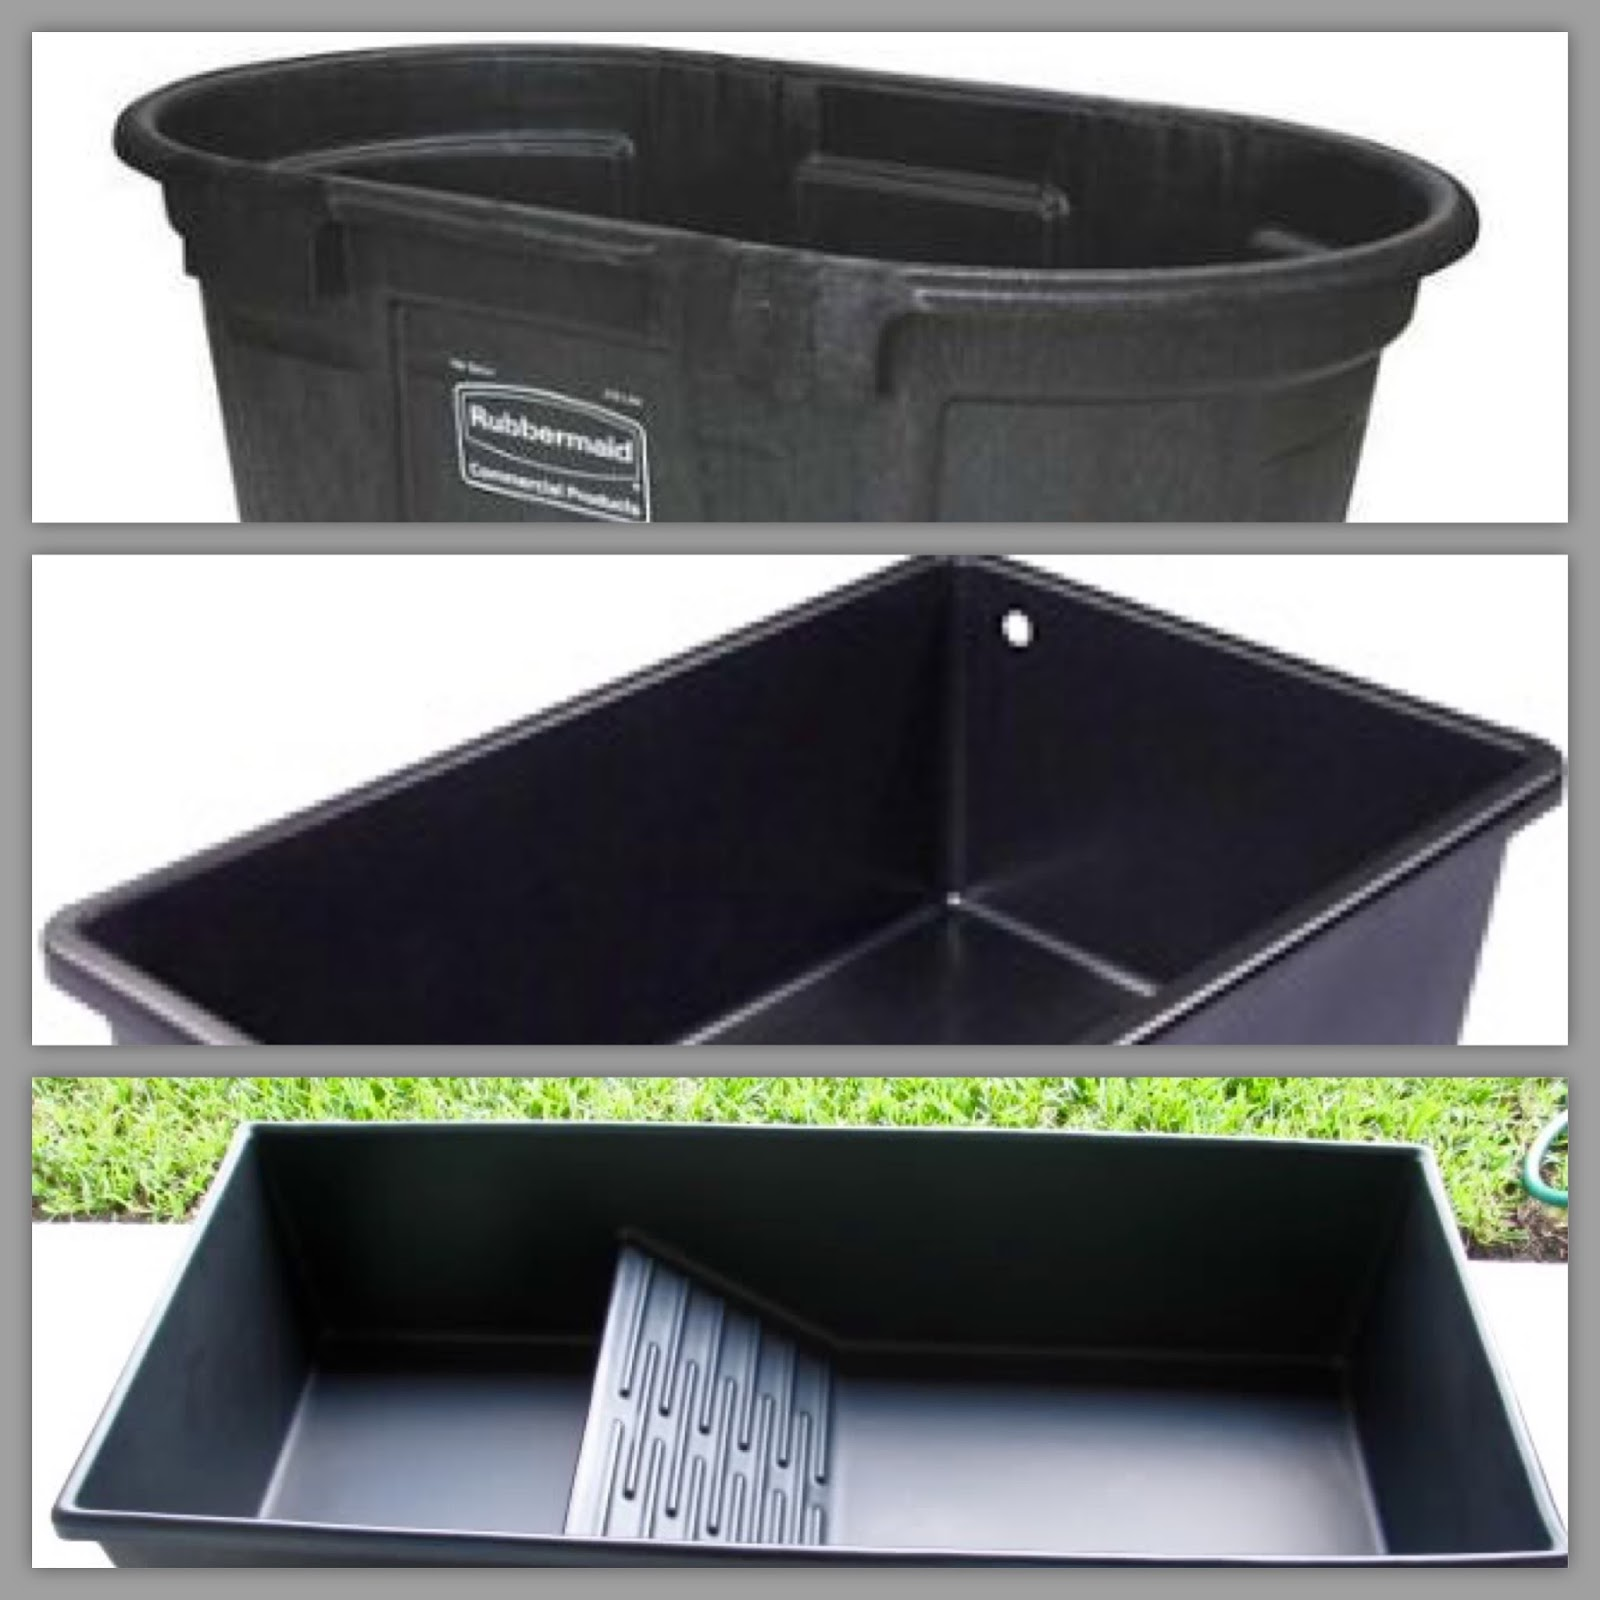 Turtle base blog stock tanks vs waterland tub vs laguna for Resin tubs pros and cons